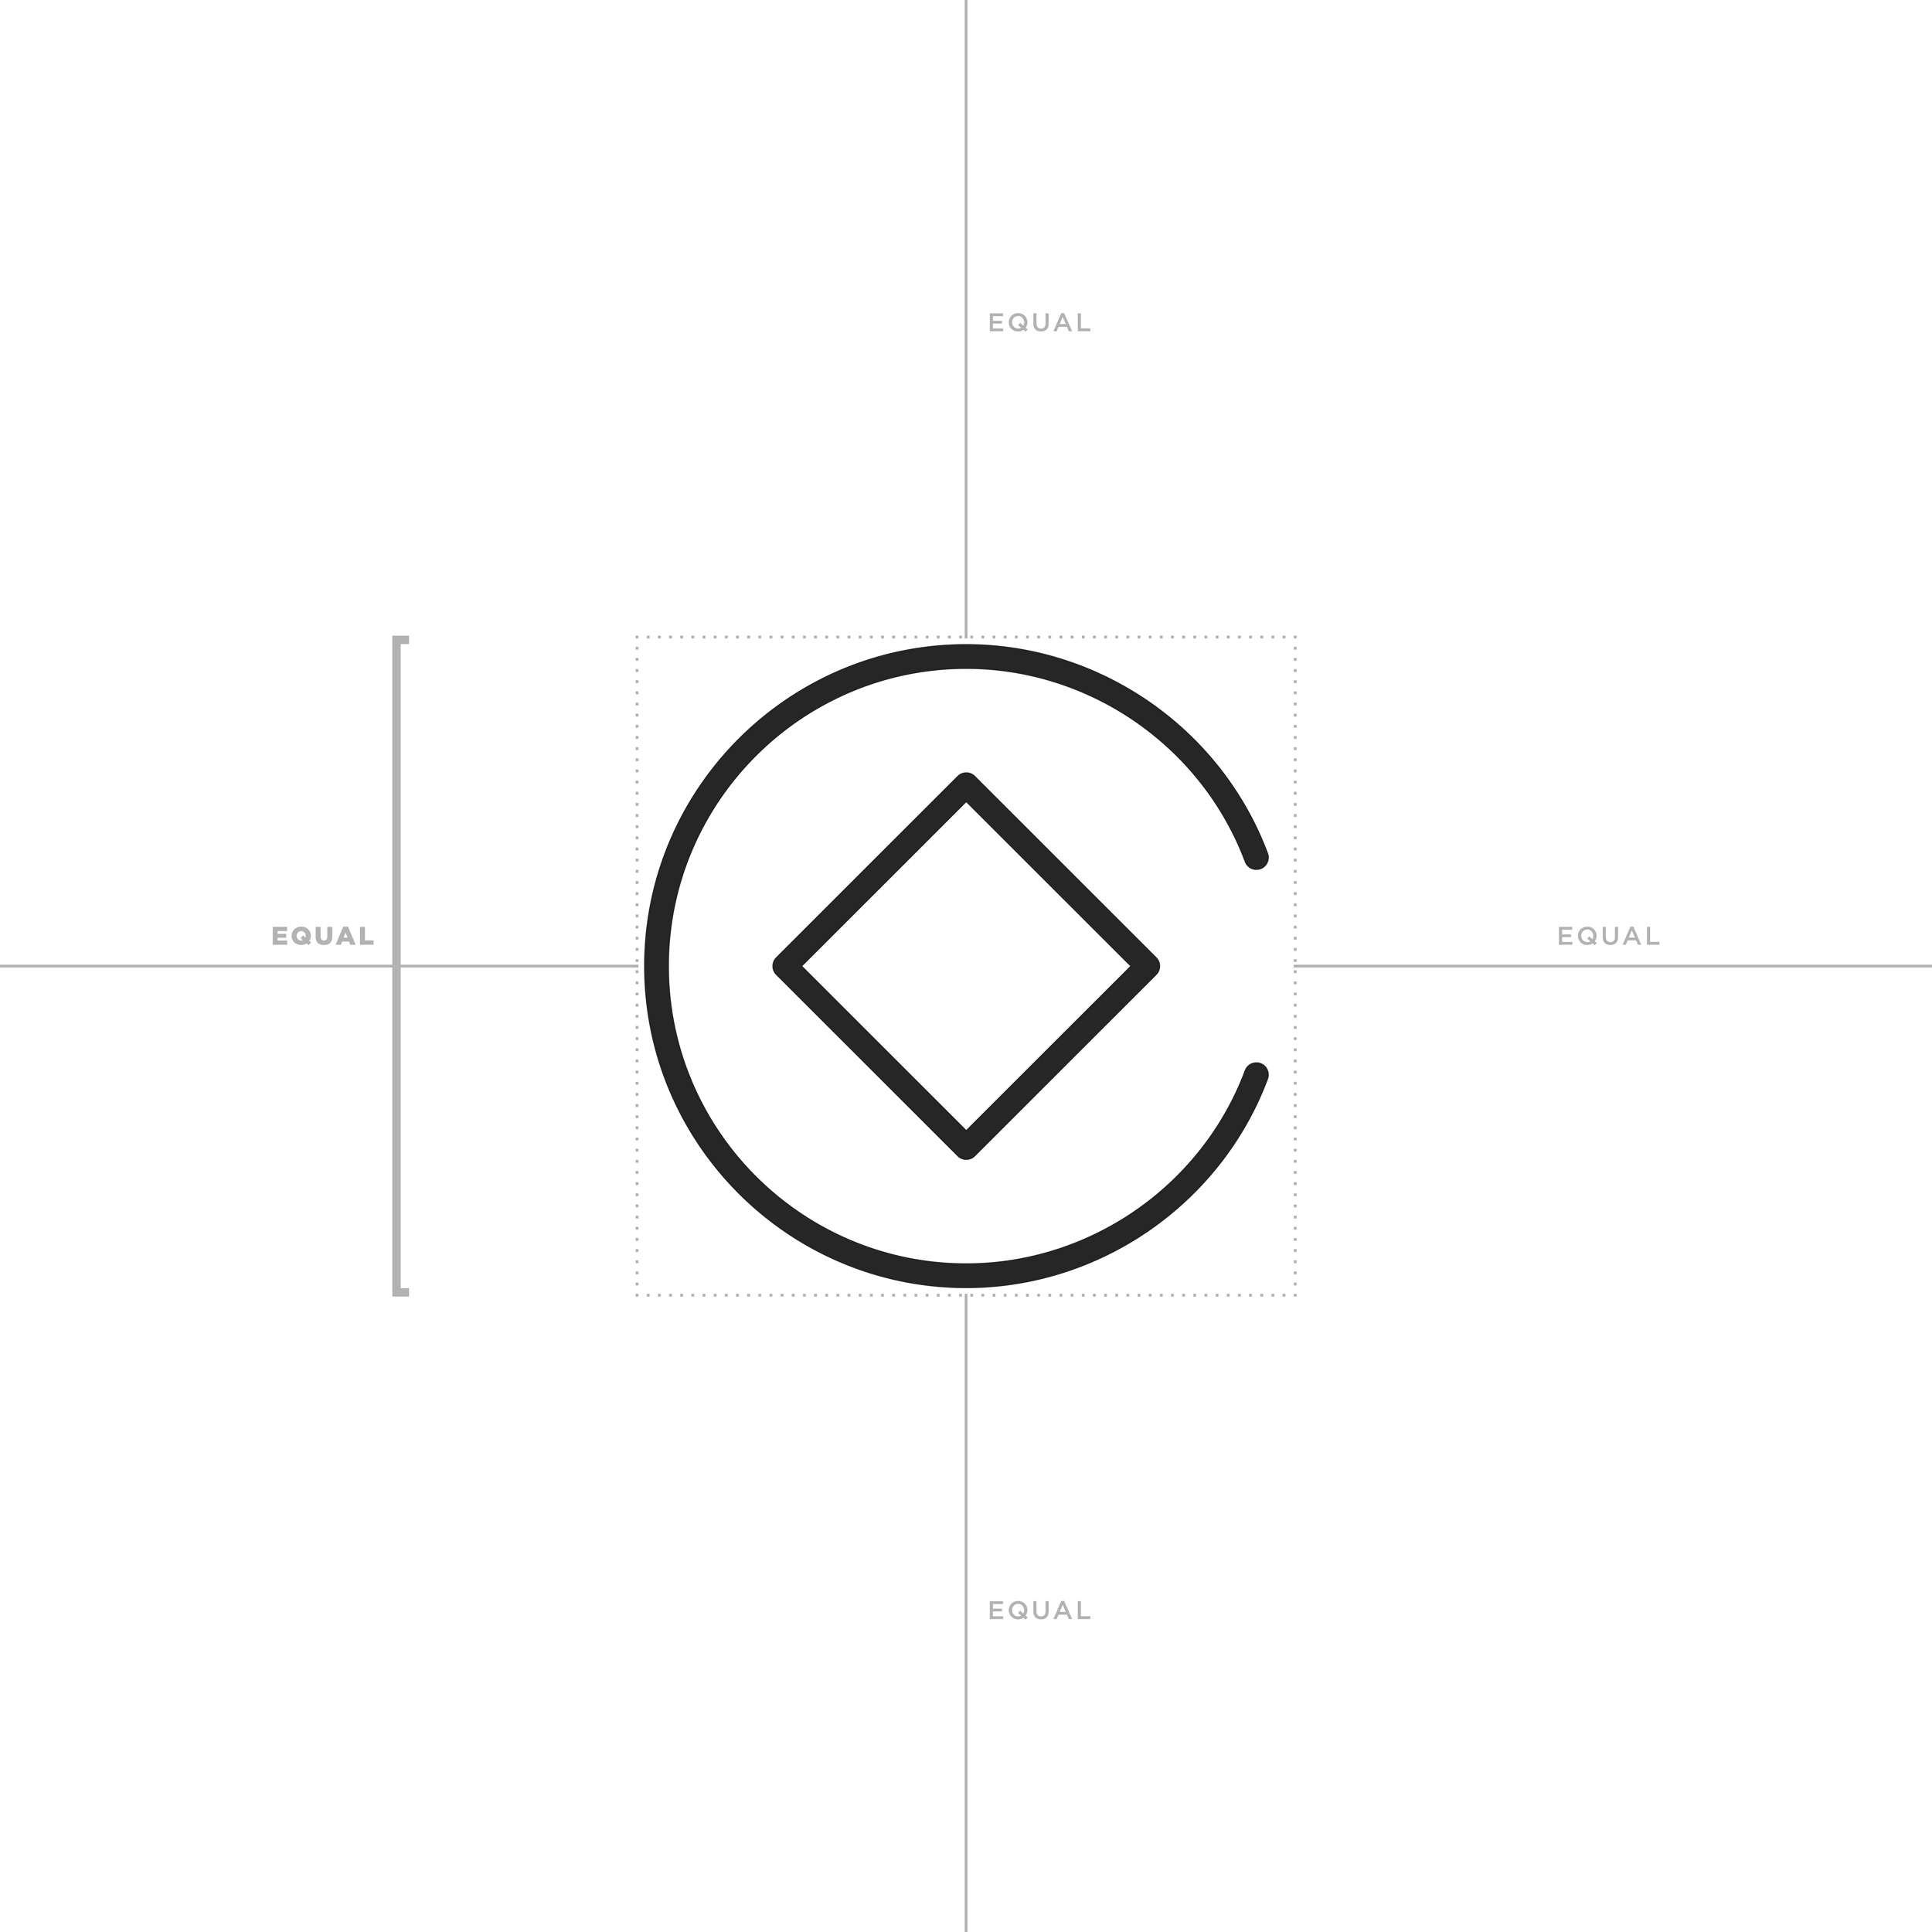 circle-logo-symbol-black-clear-space-diagram.jpg